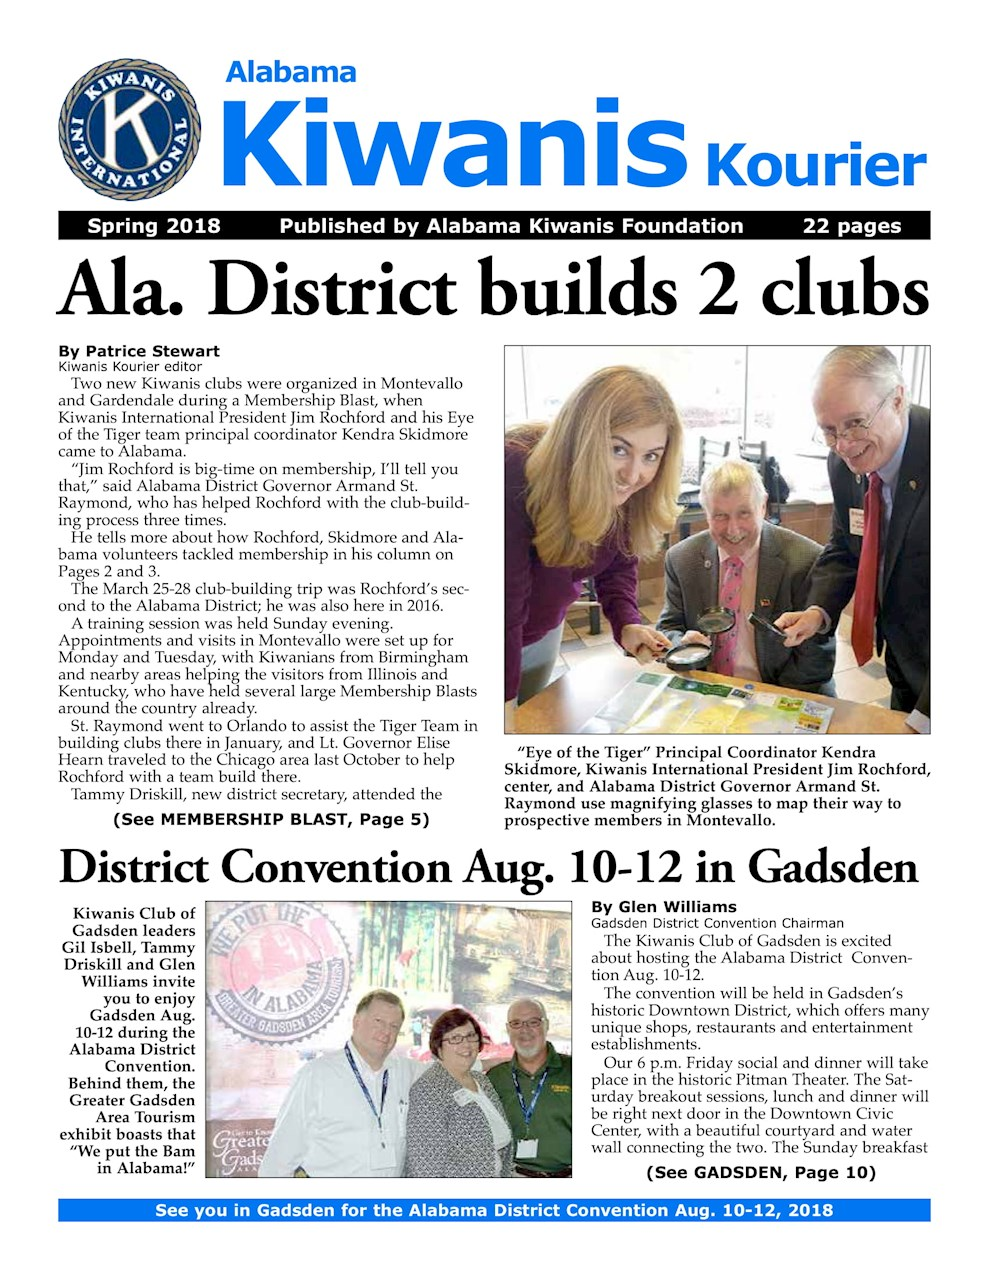 Spring 2018 Edition of the Alabama Kiwanis Kourier